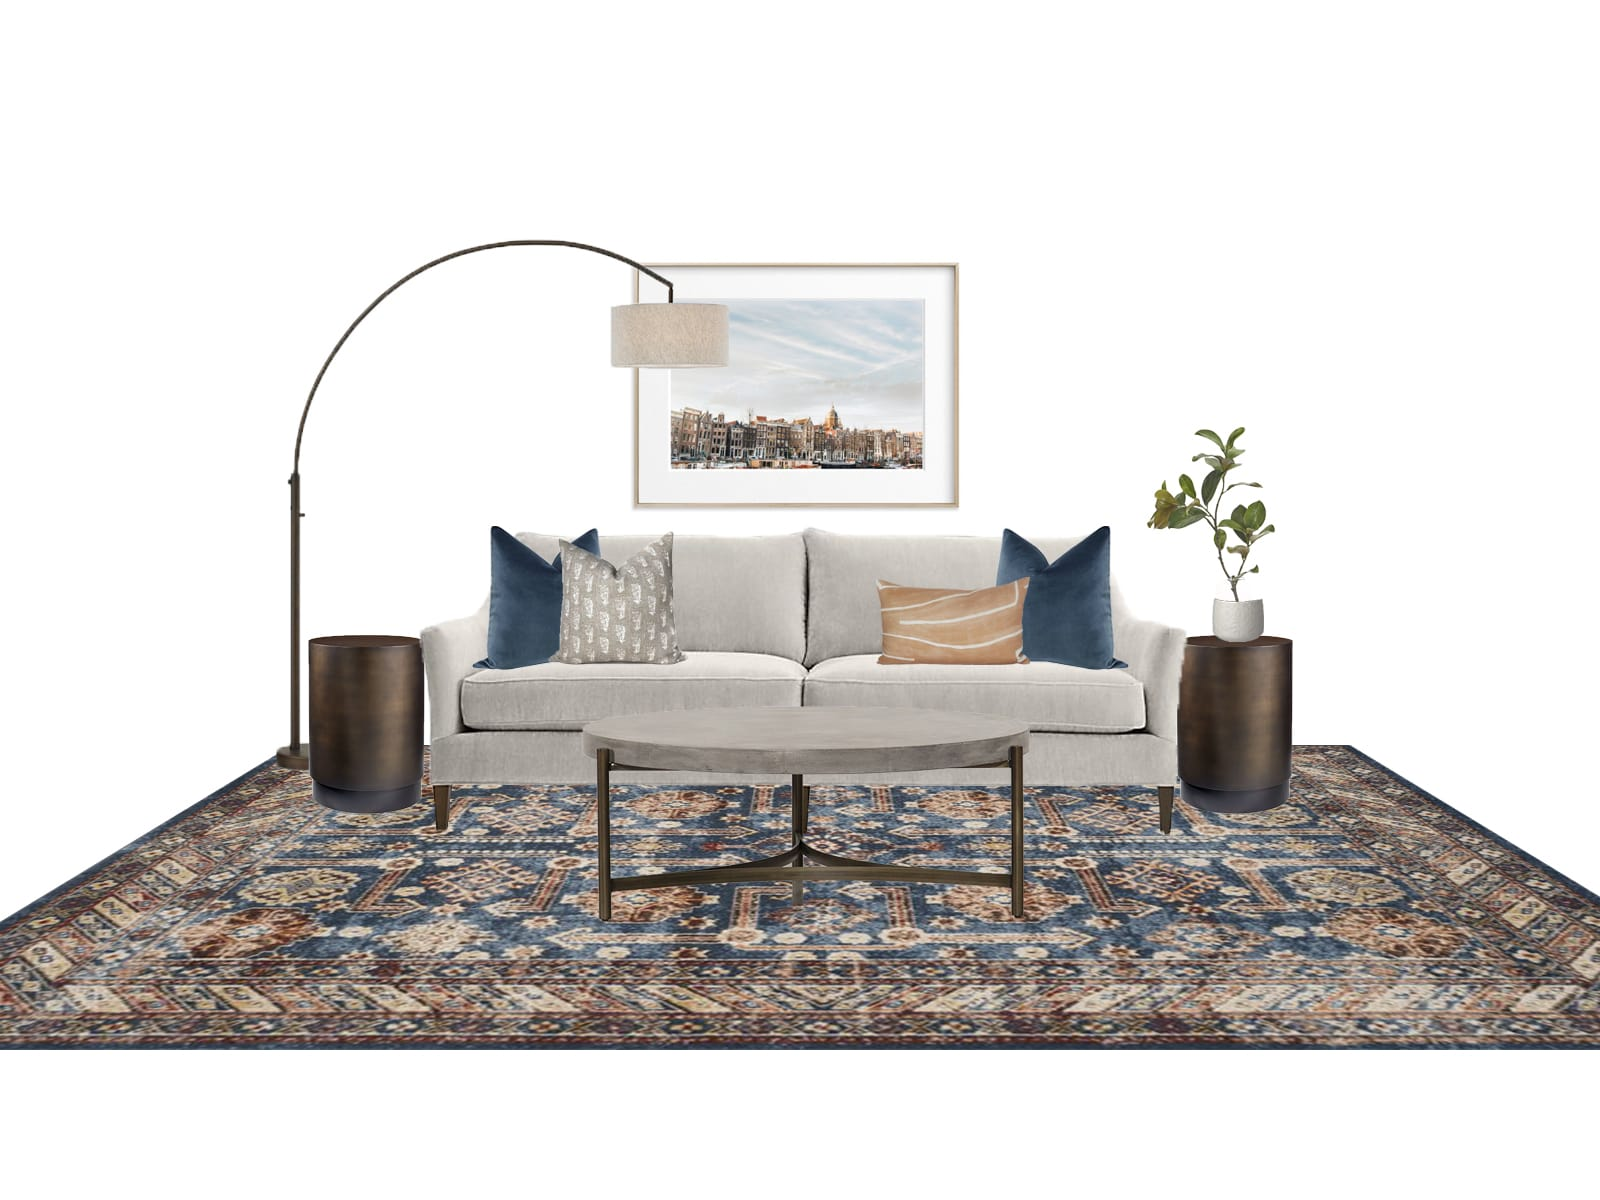 Interior Design Warm and Welcoming Sofa